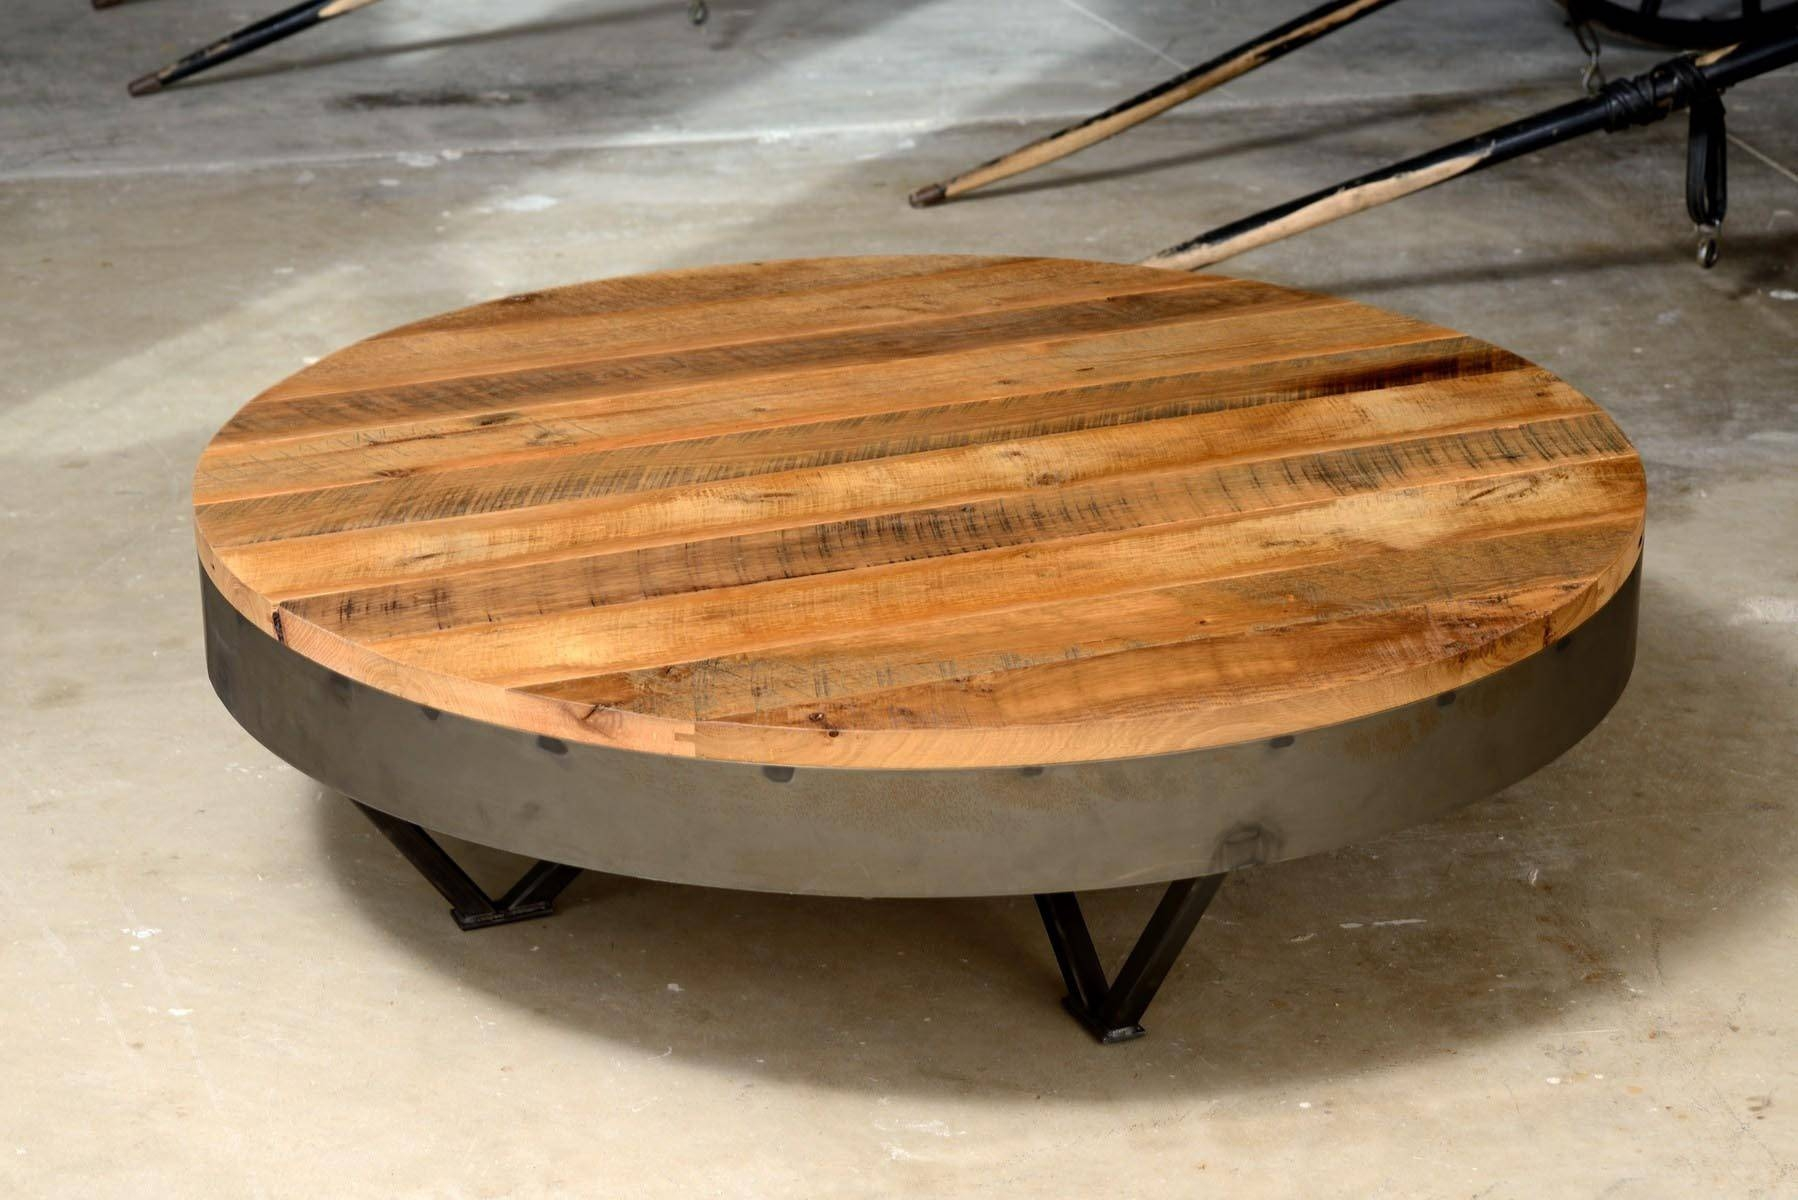 Low Round Coffee Table | Coffee Table Design Ideas within Low Wooden Coffee Tables (Image 9 of 15)